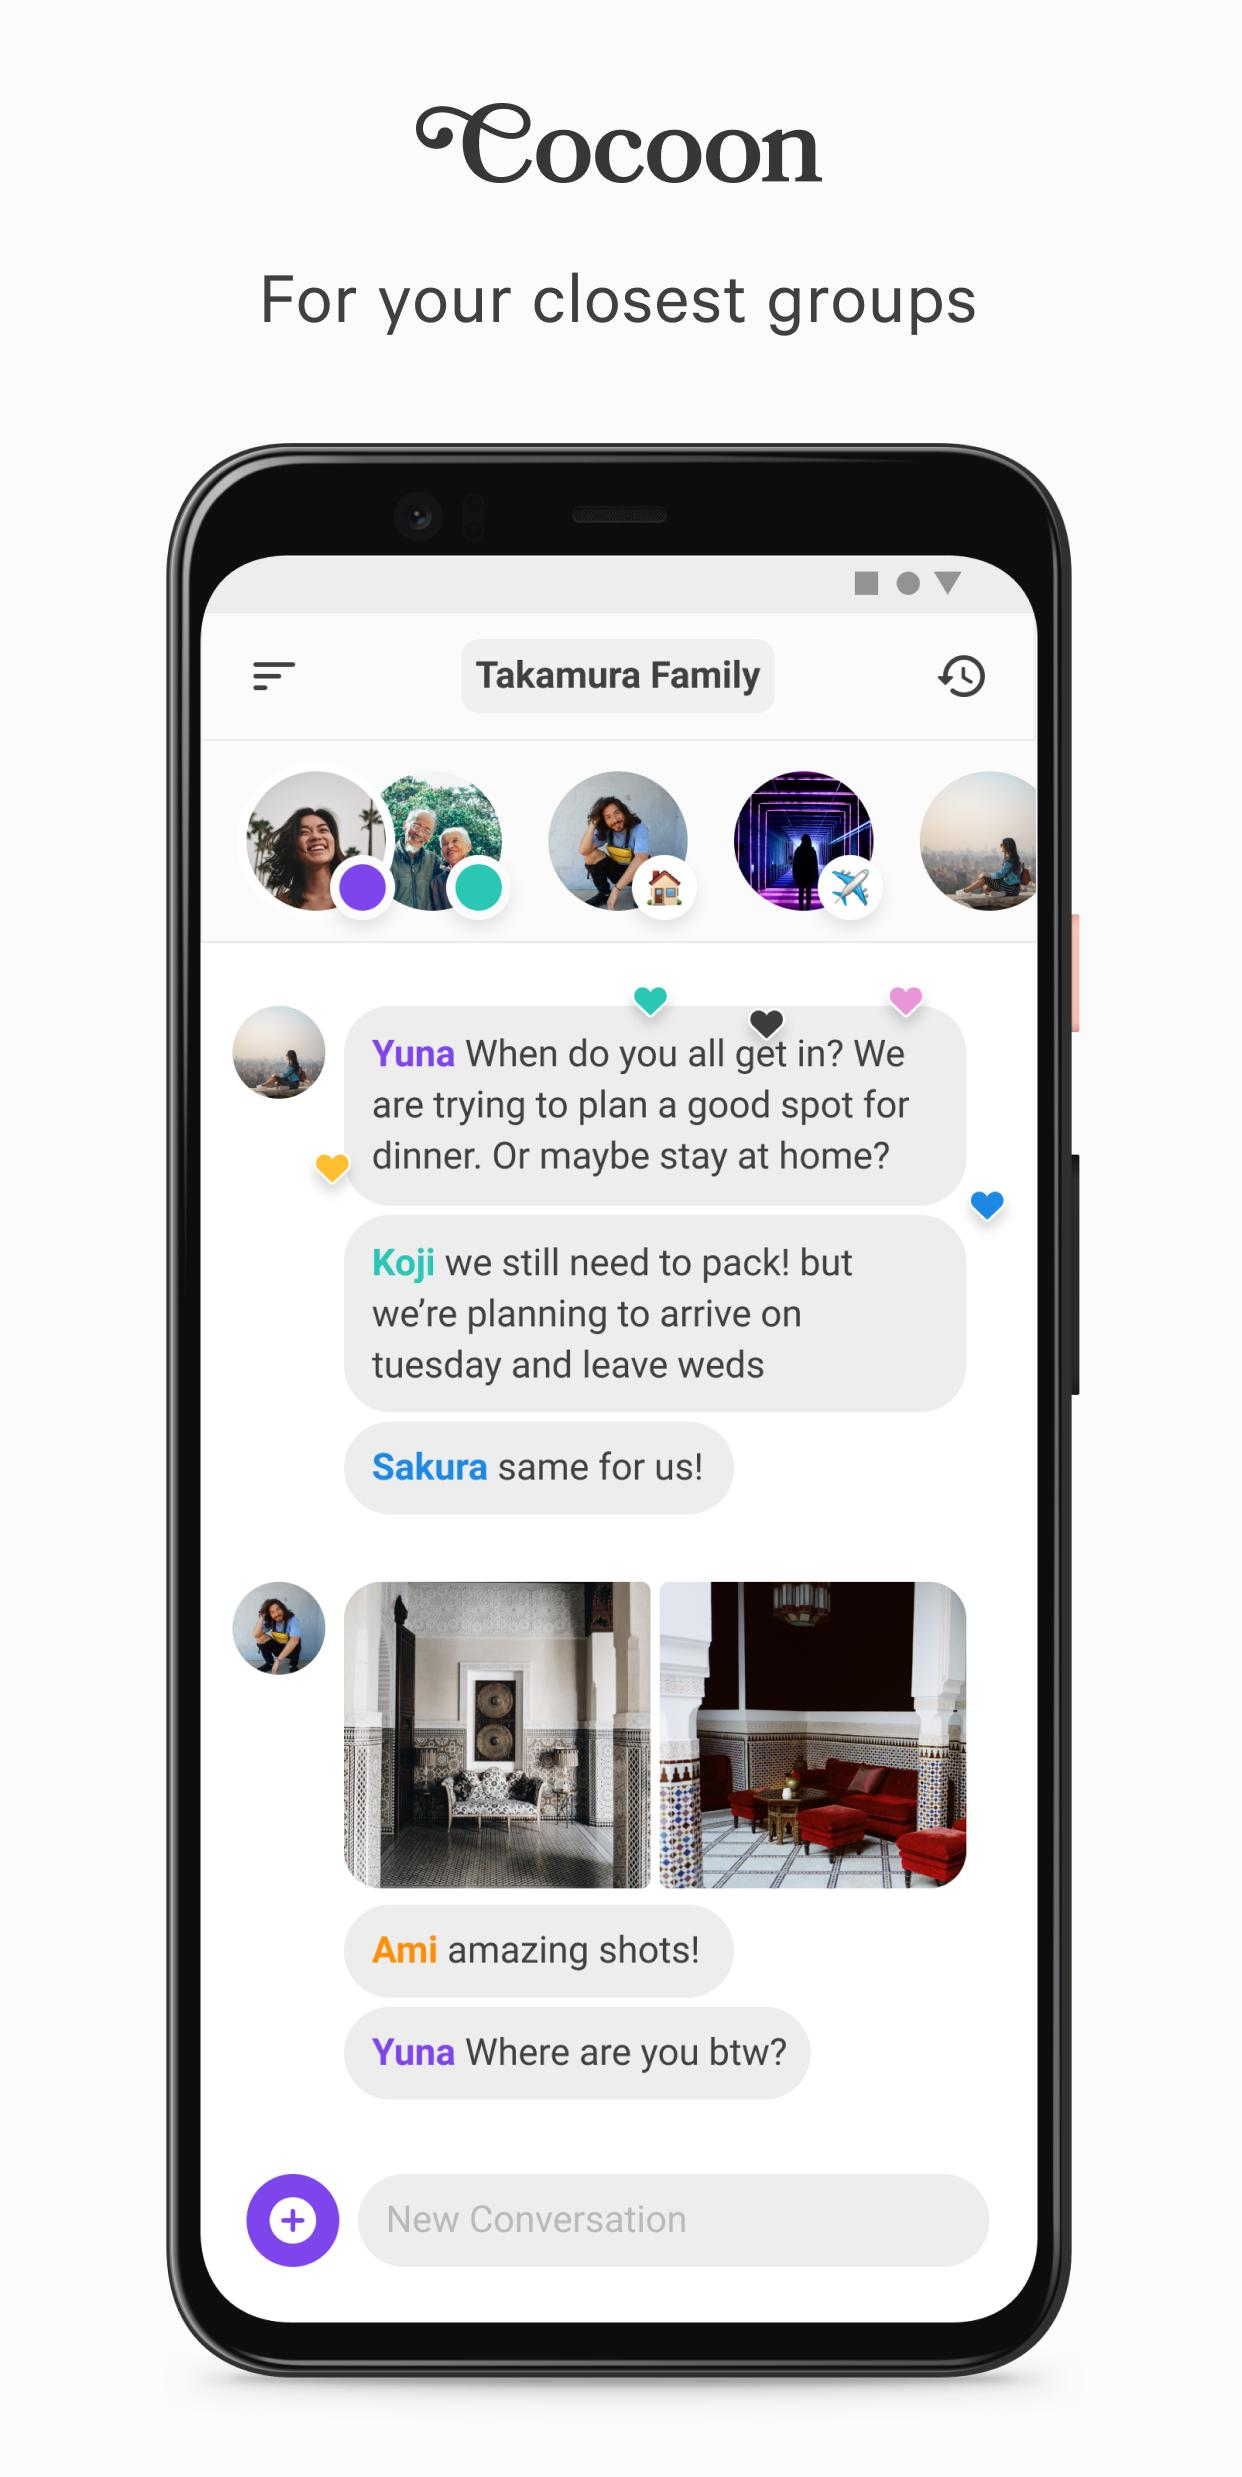 Cocoon Share Privately with Your Closest Groups 1.2.4 Screenshot 1